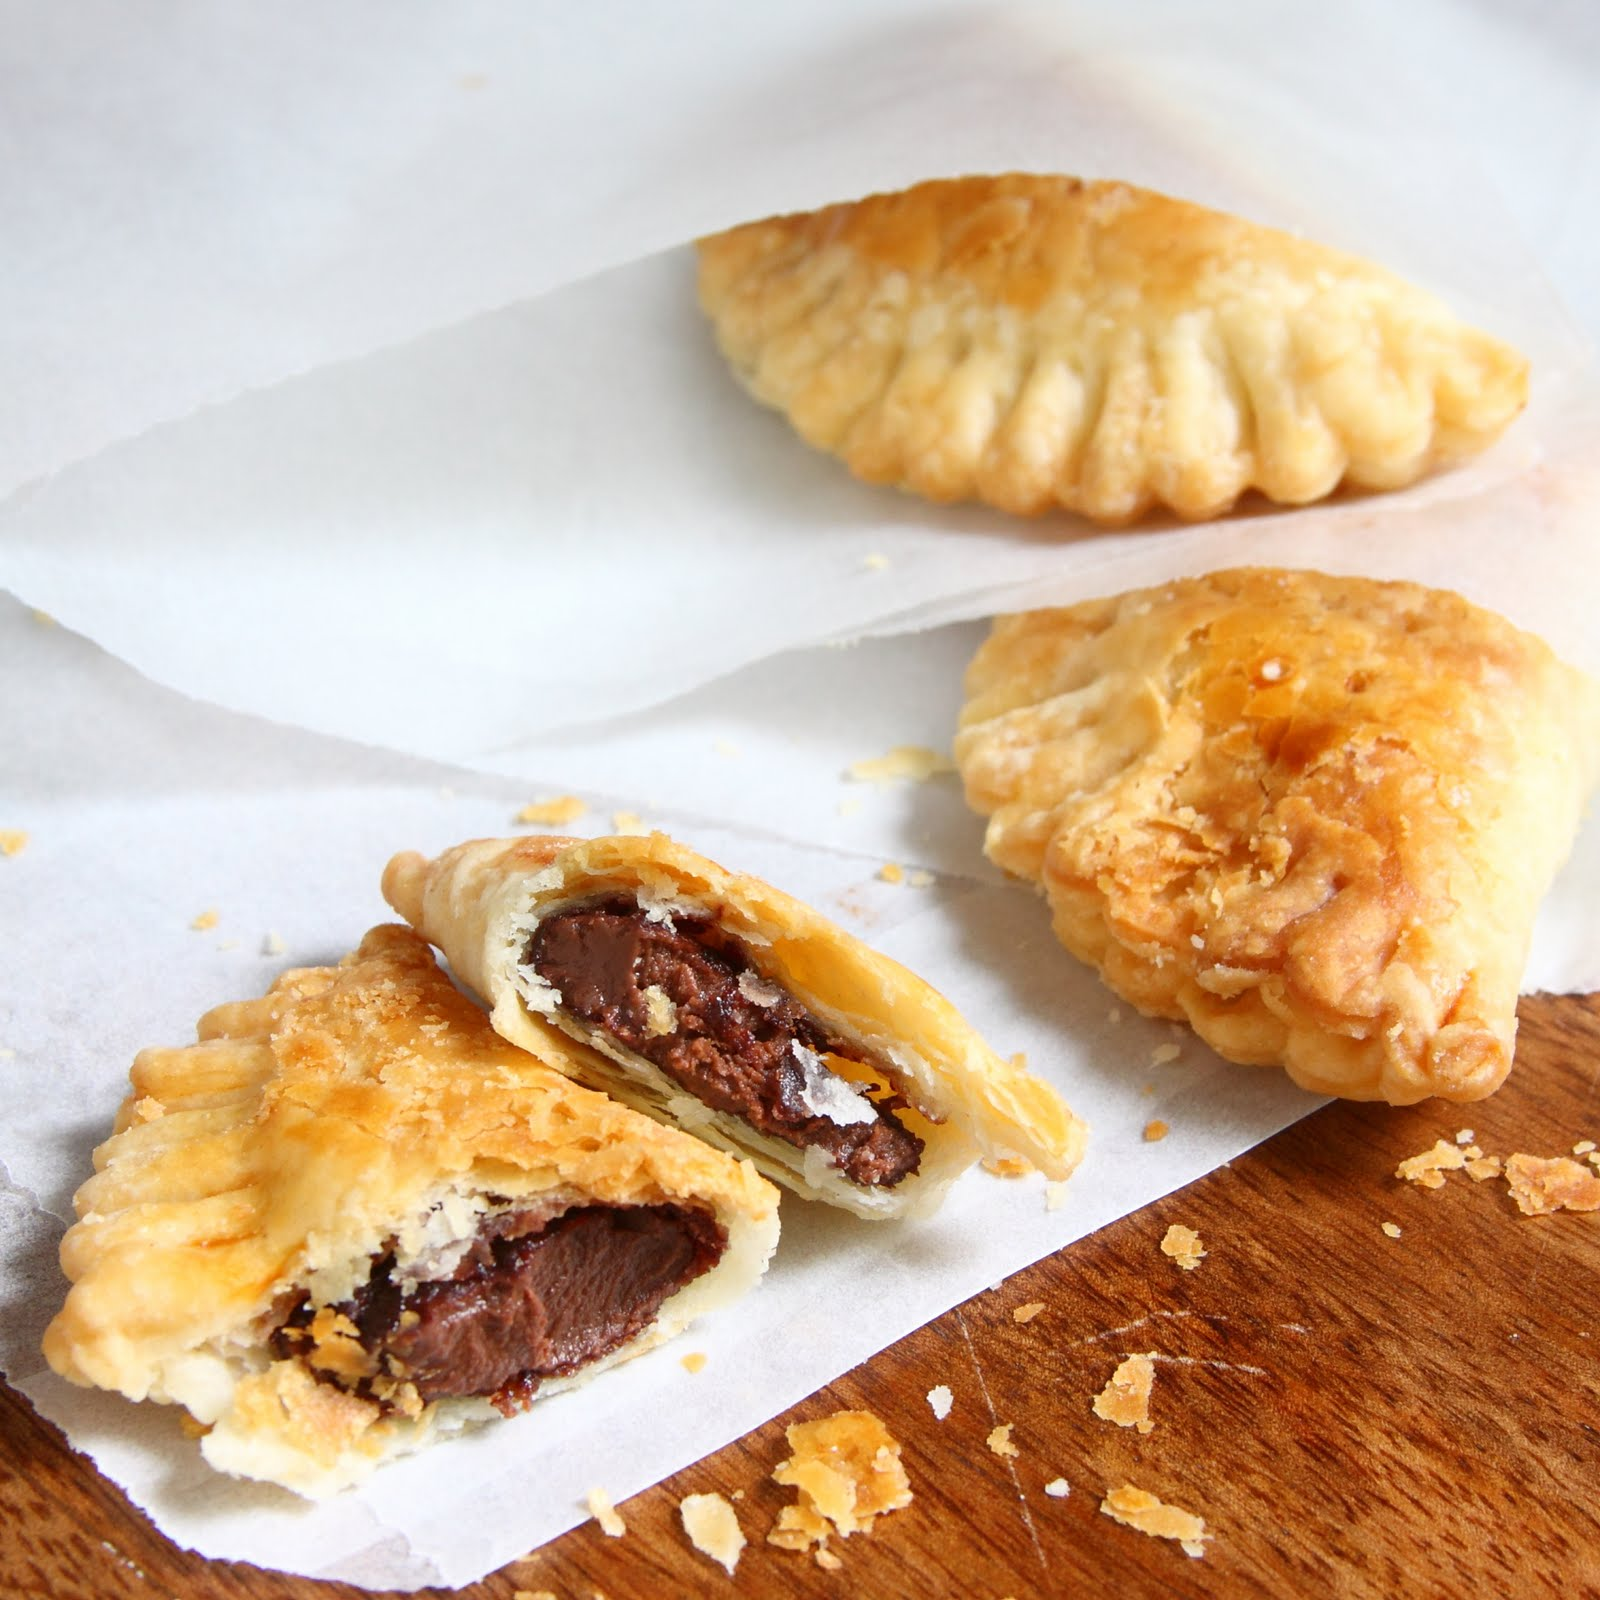 ShowFood Chef: Nutella Hand Pies - Flaky, Chocolate Mini Pies